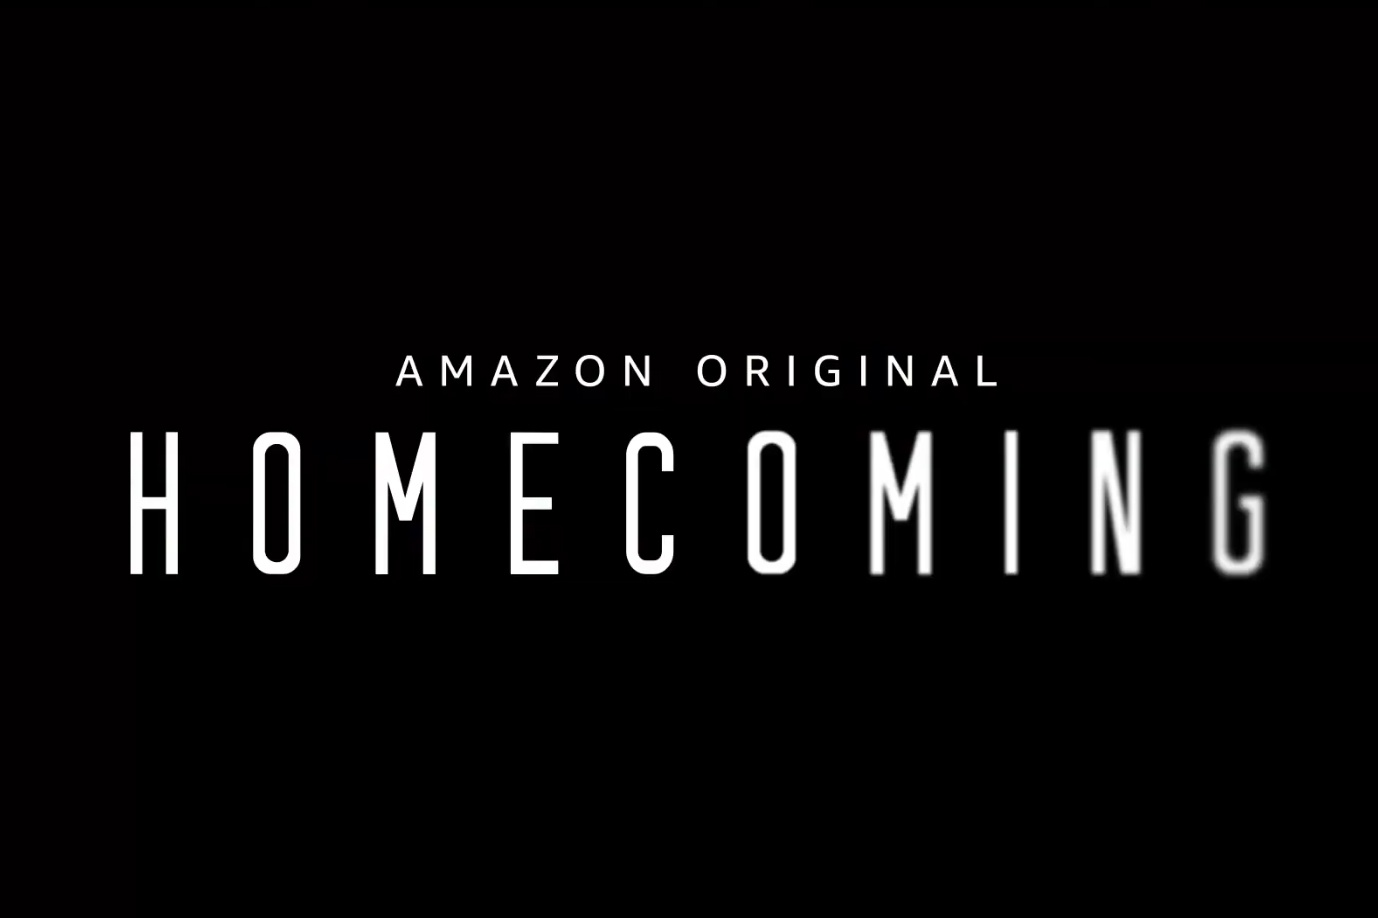 Homecoming - Trailer Saison 2